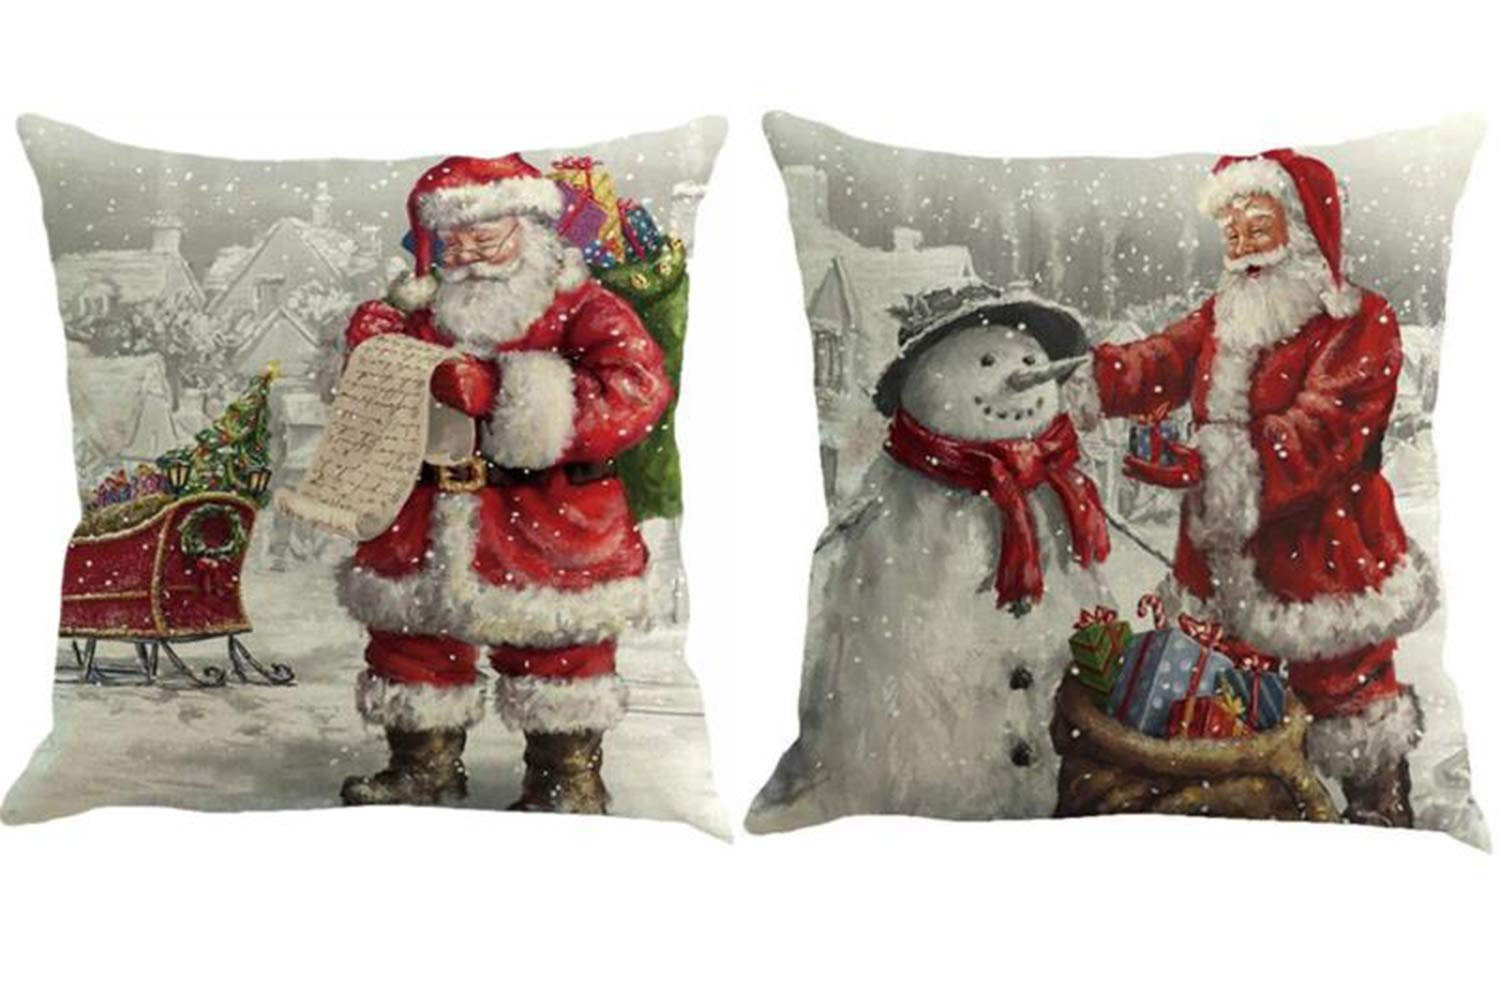 Foozoup Merry Christmas Throw Pillowcase Santa Claus Home Decor Cushion Cover for Sofa Couch (Set of 2)